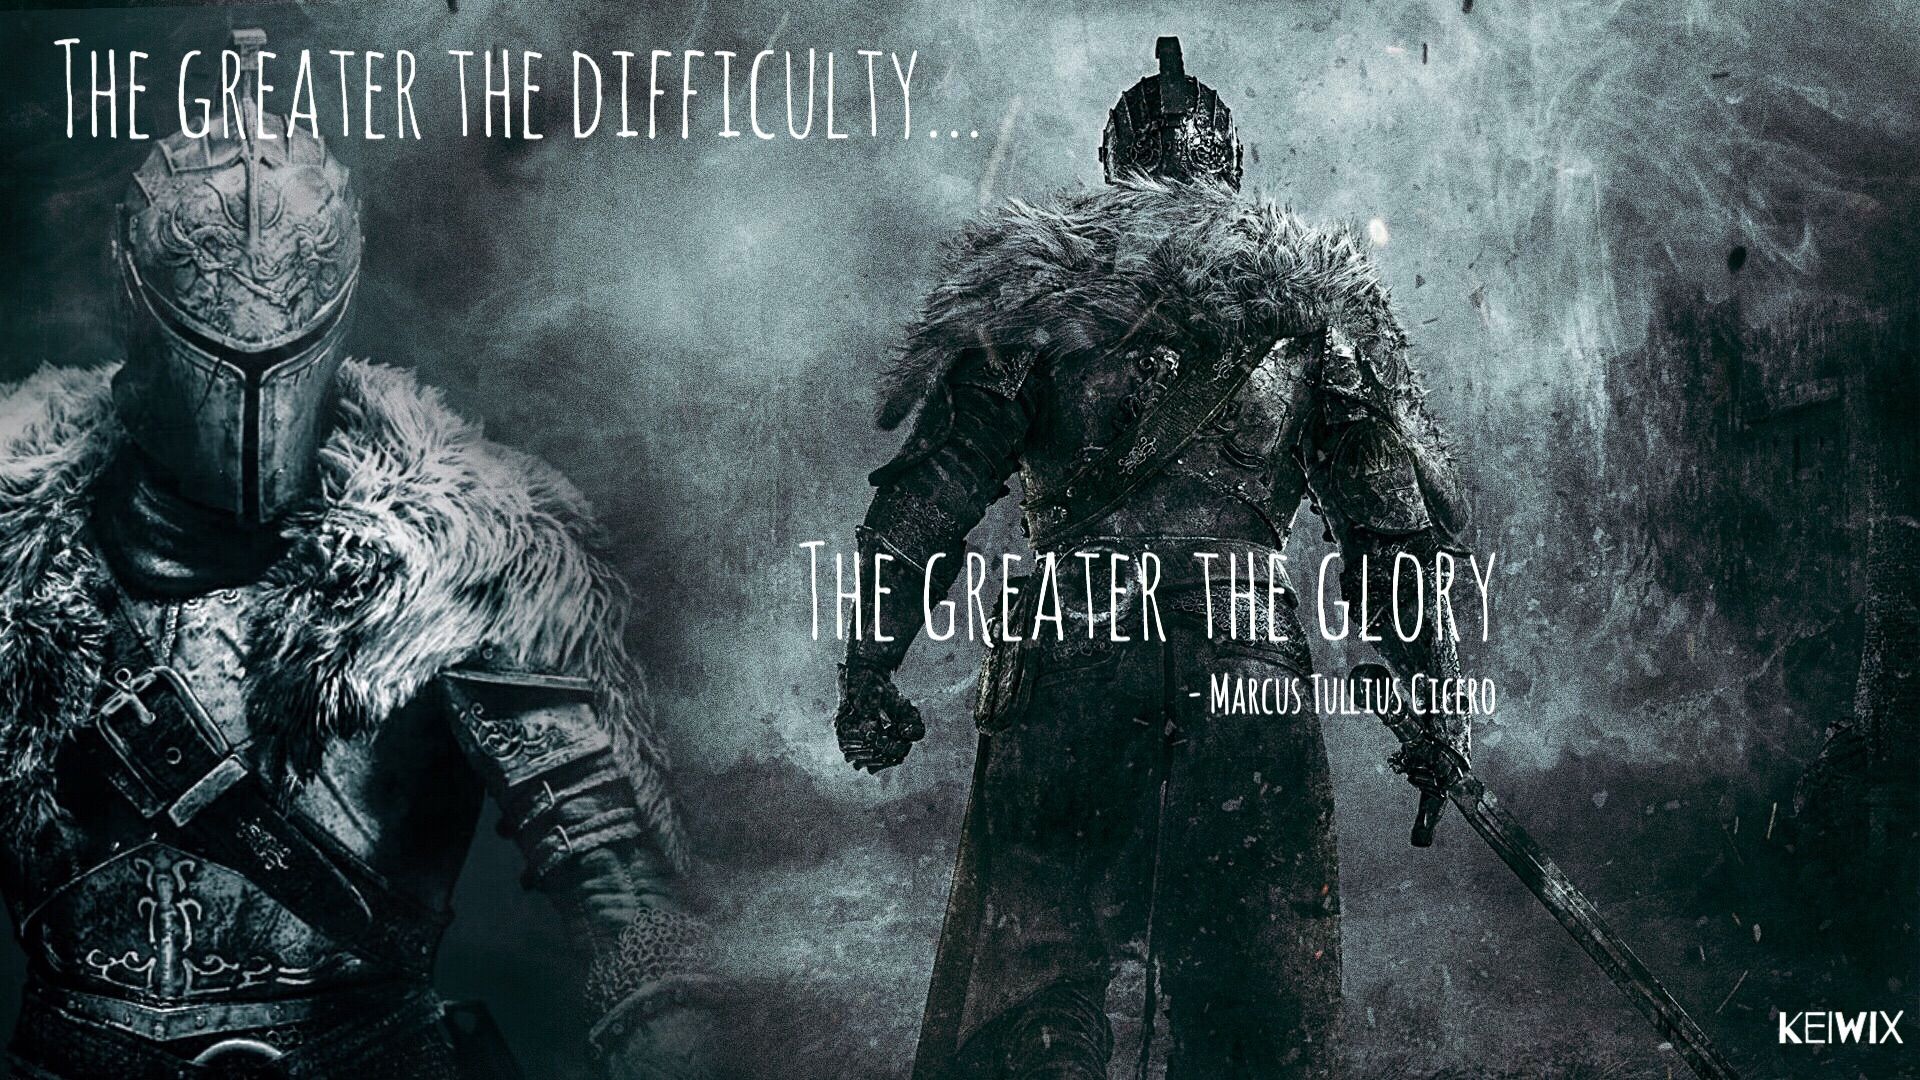 Quotes About Dark Souls: Dark Souls 2 Wallpaper By Keiwix On DeviantArt